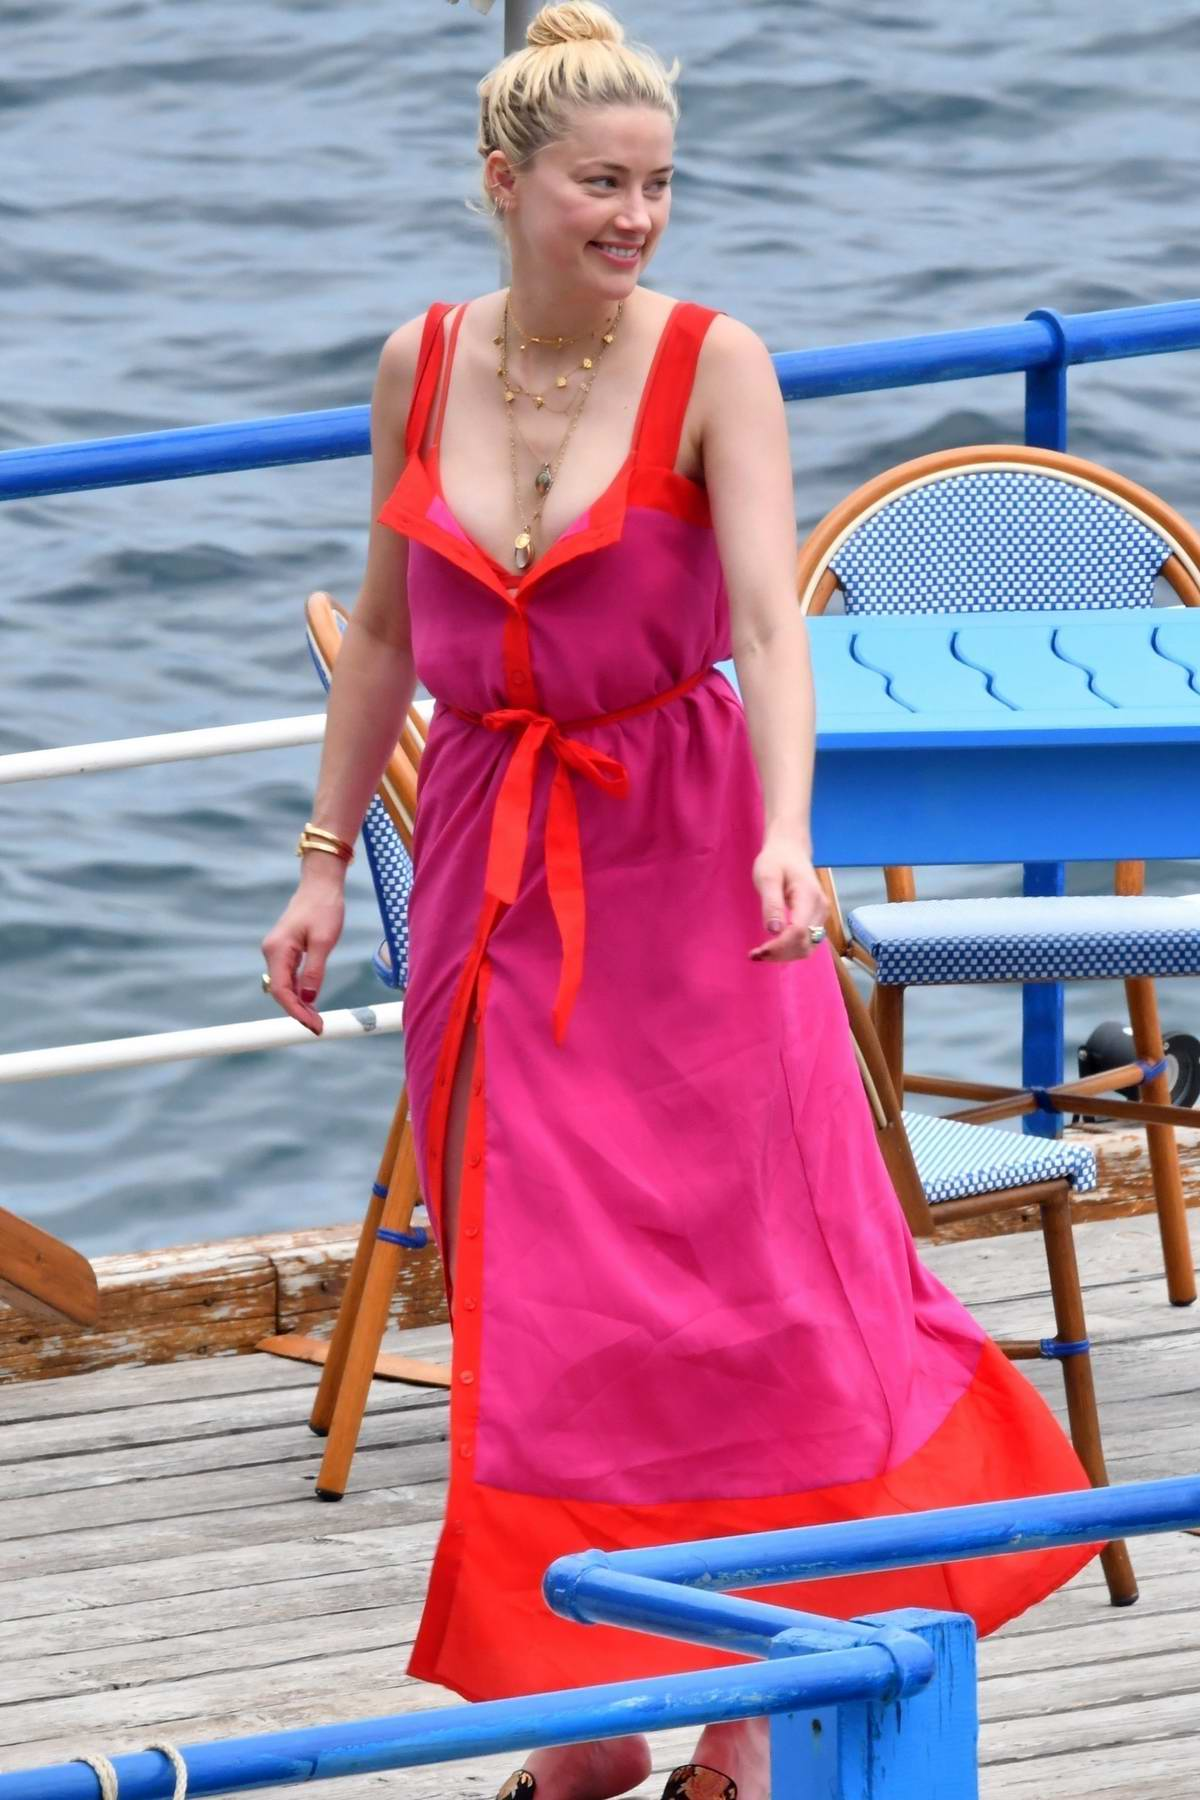 Amber Heard enjoys a day with friends aboard a yacht on the Amalfi Coast, Italy